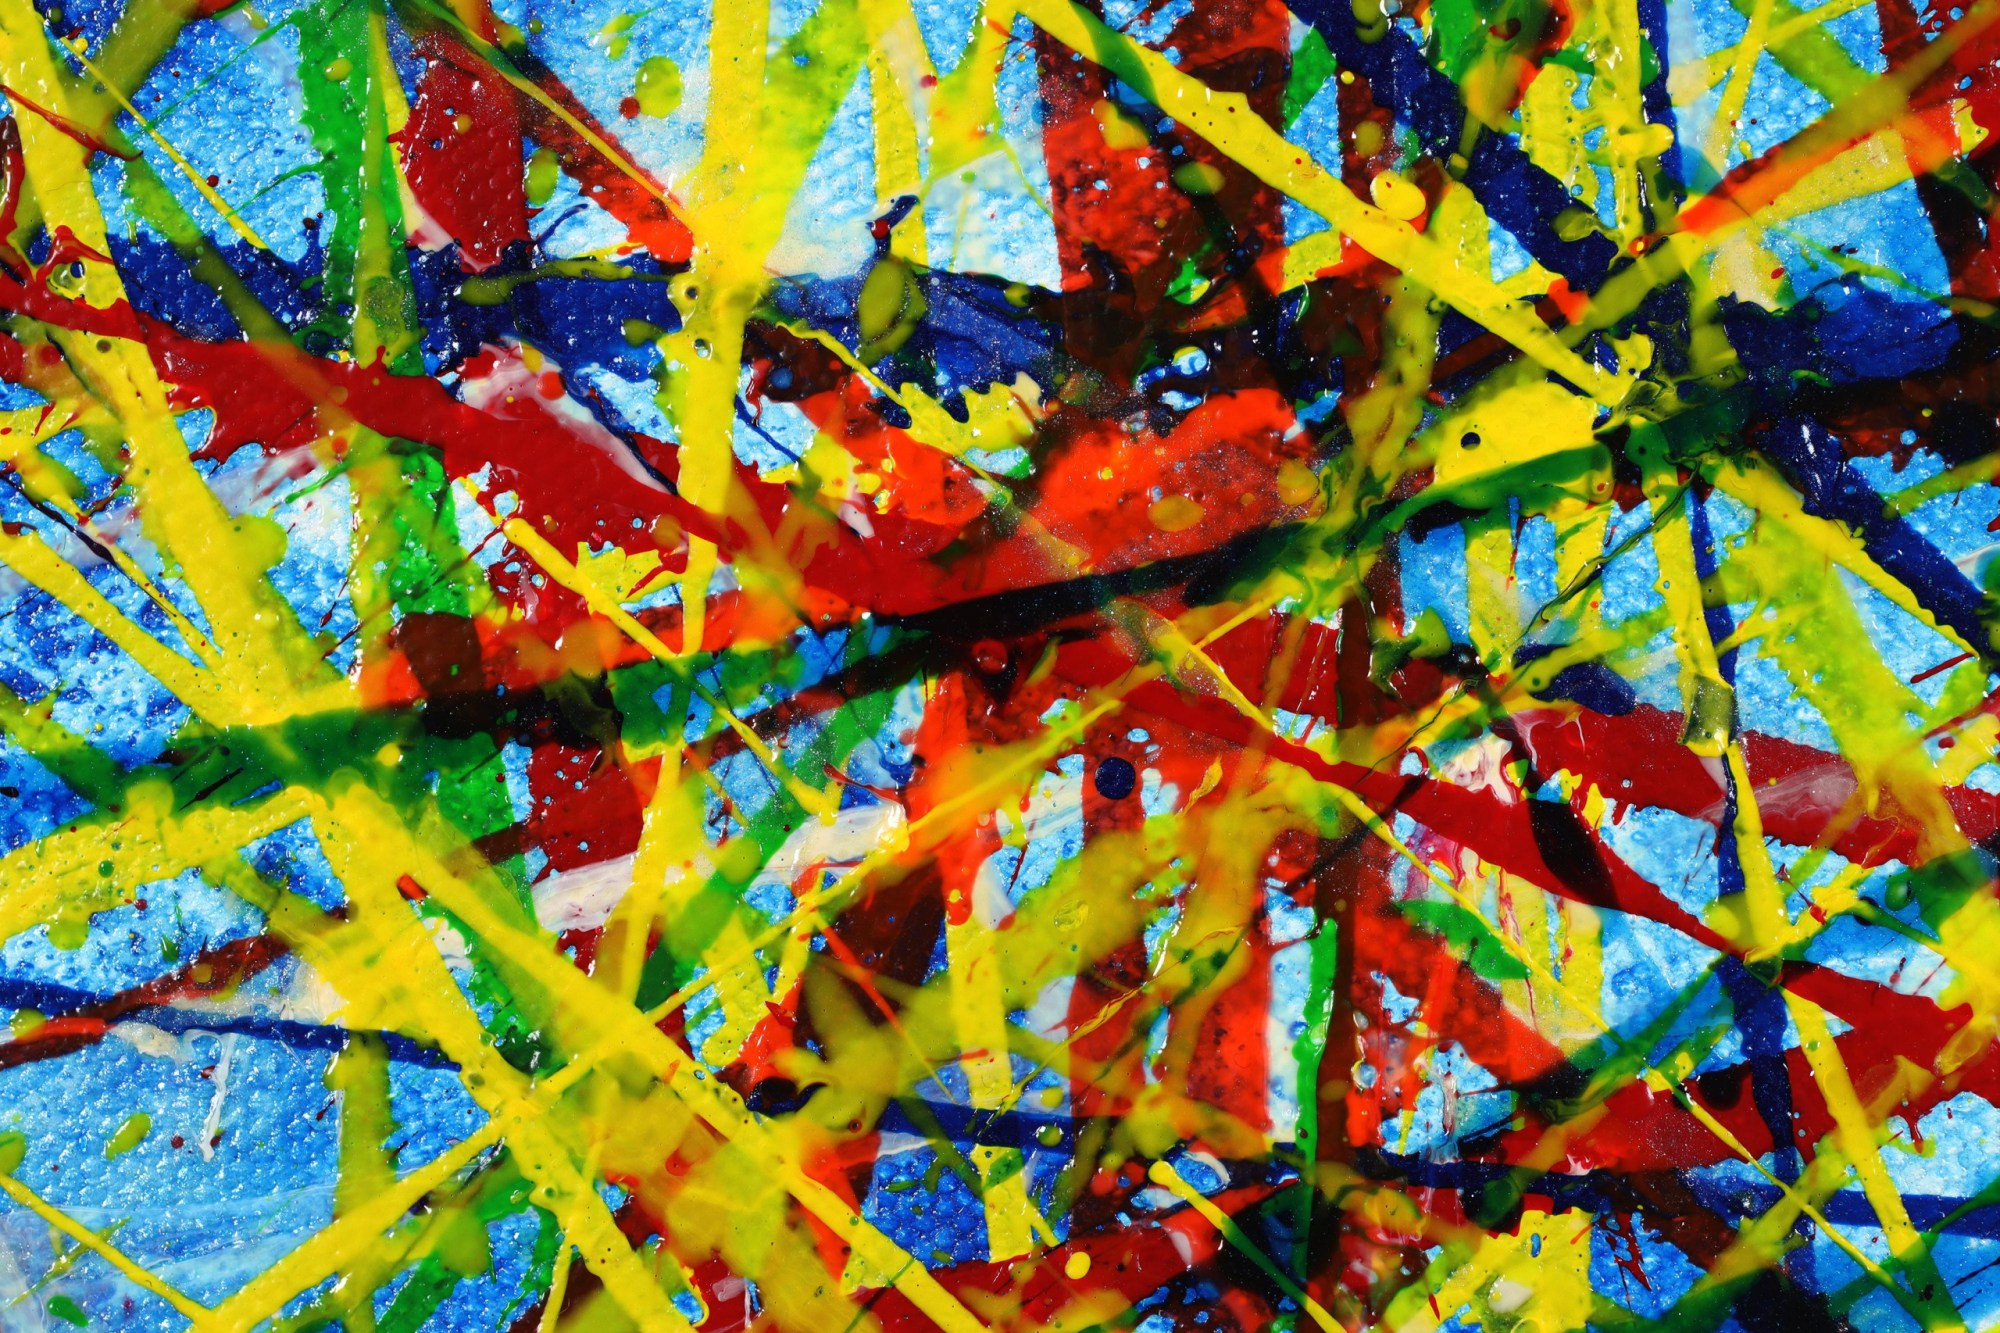 DETAIL / Colorful Display of Affection 1 (2021)